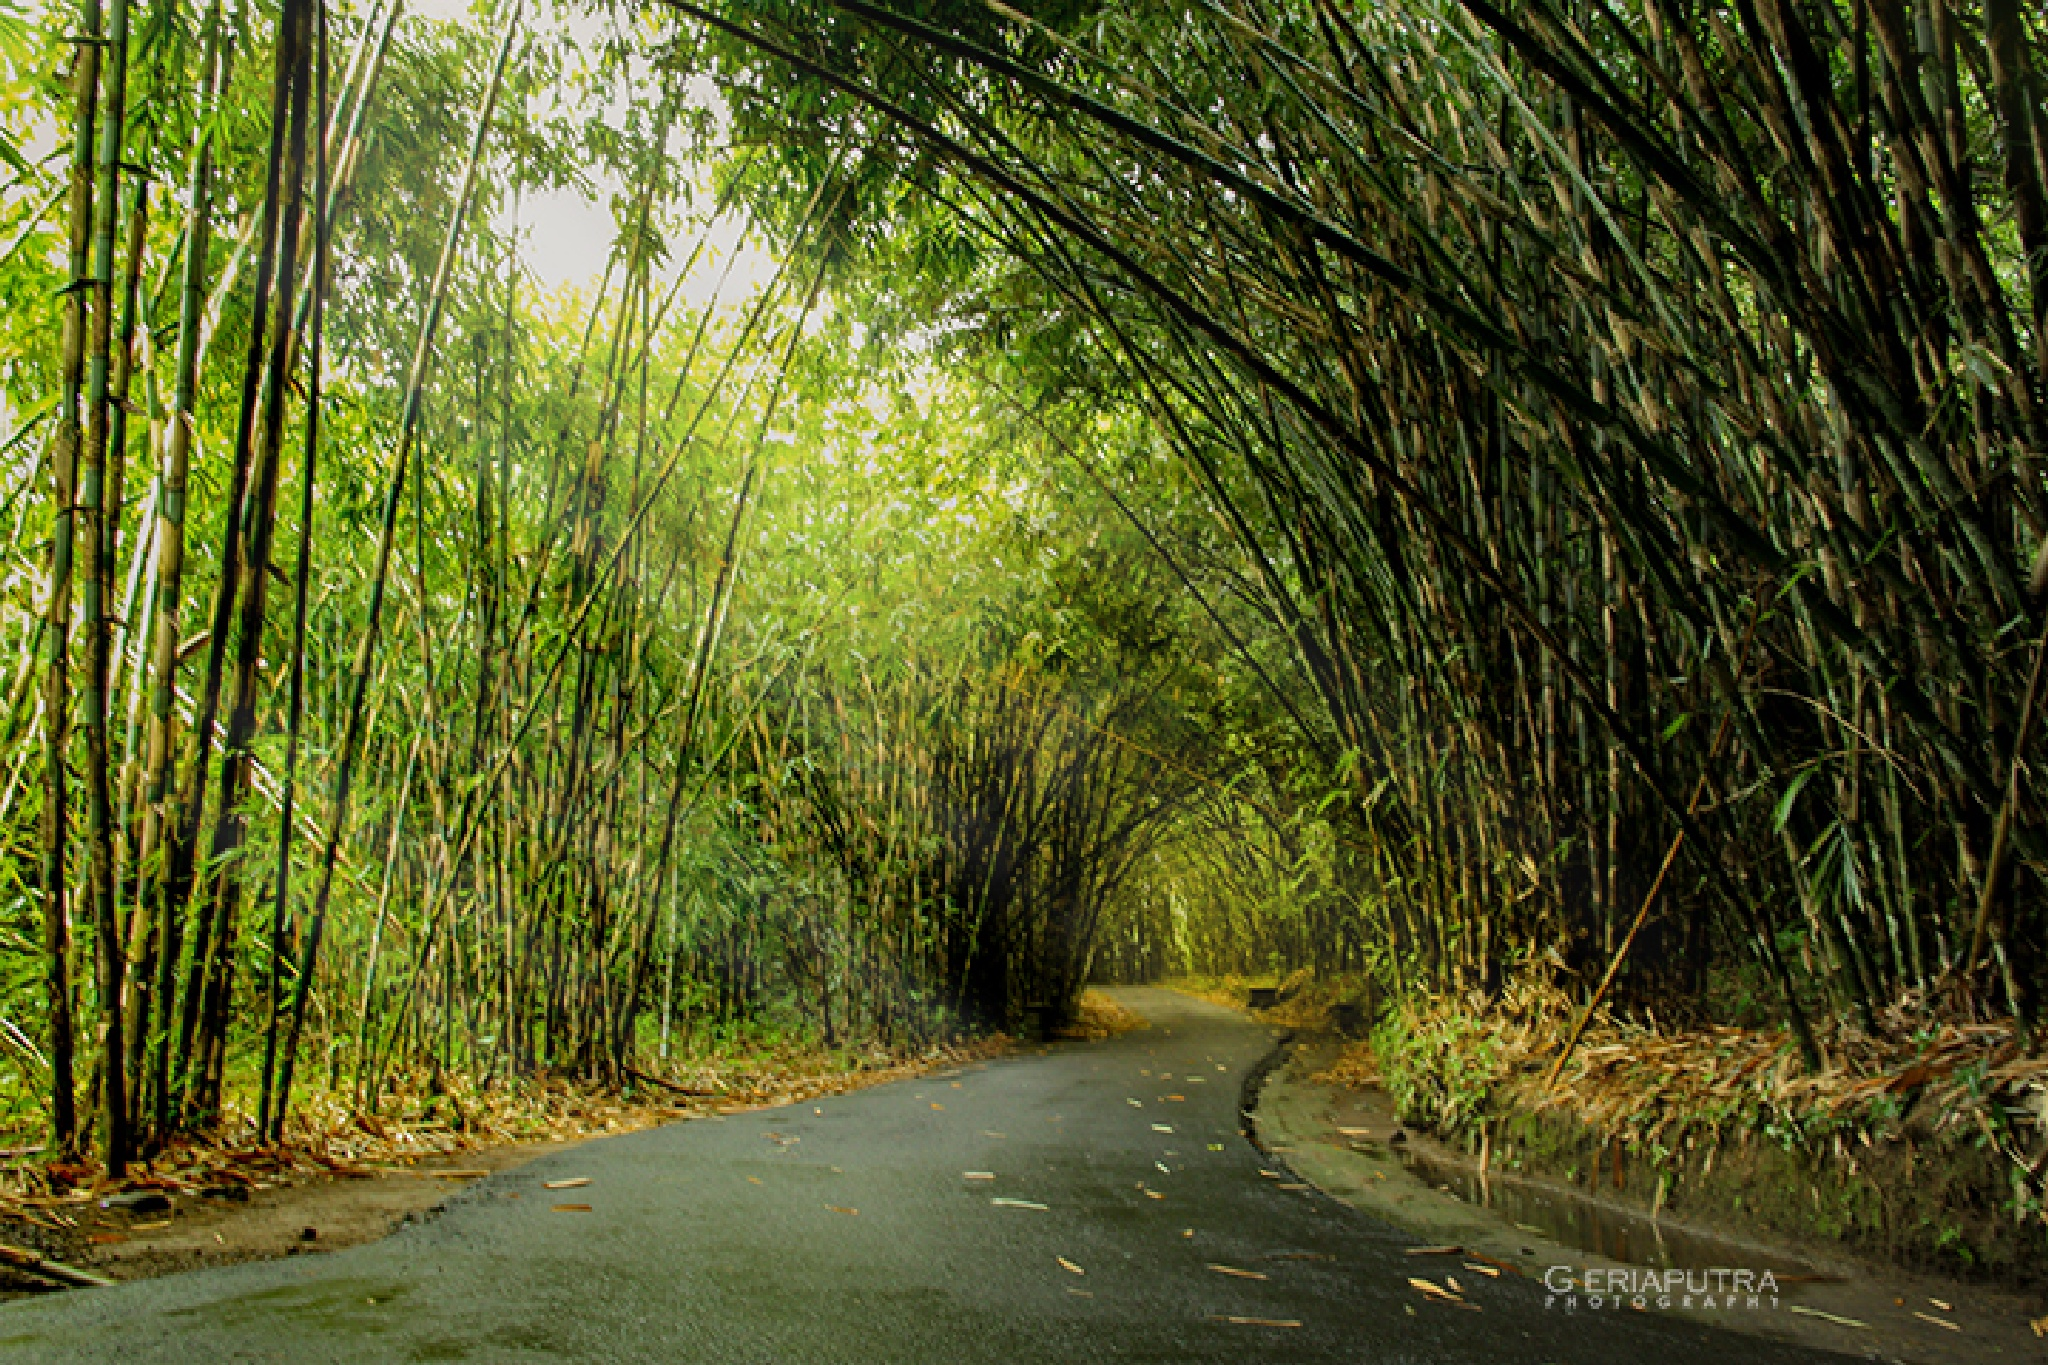 BAMBOO FOREST by Made Harsa Geriaputra